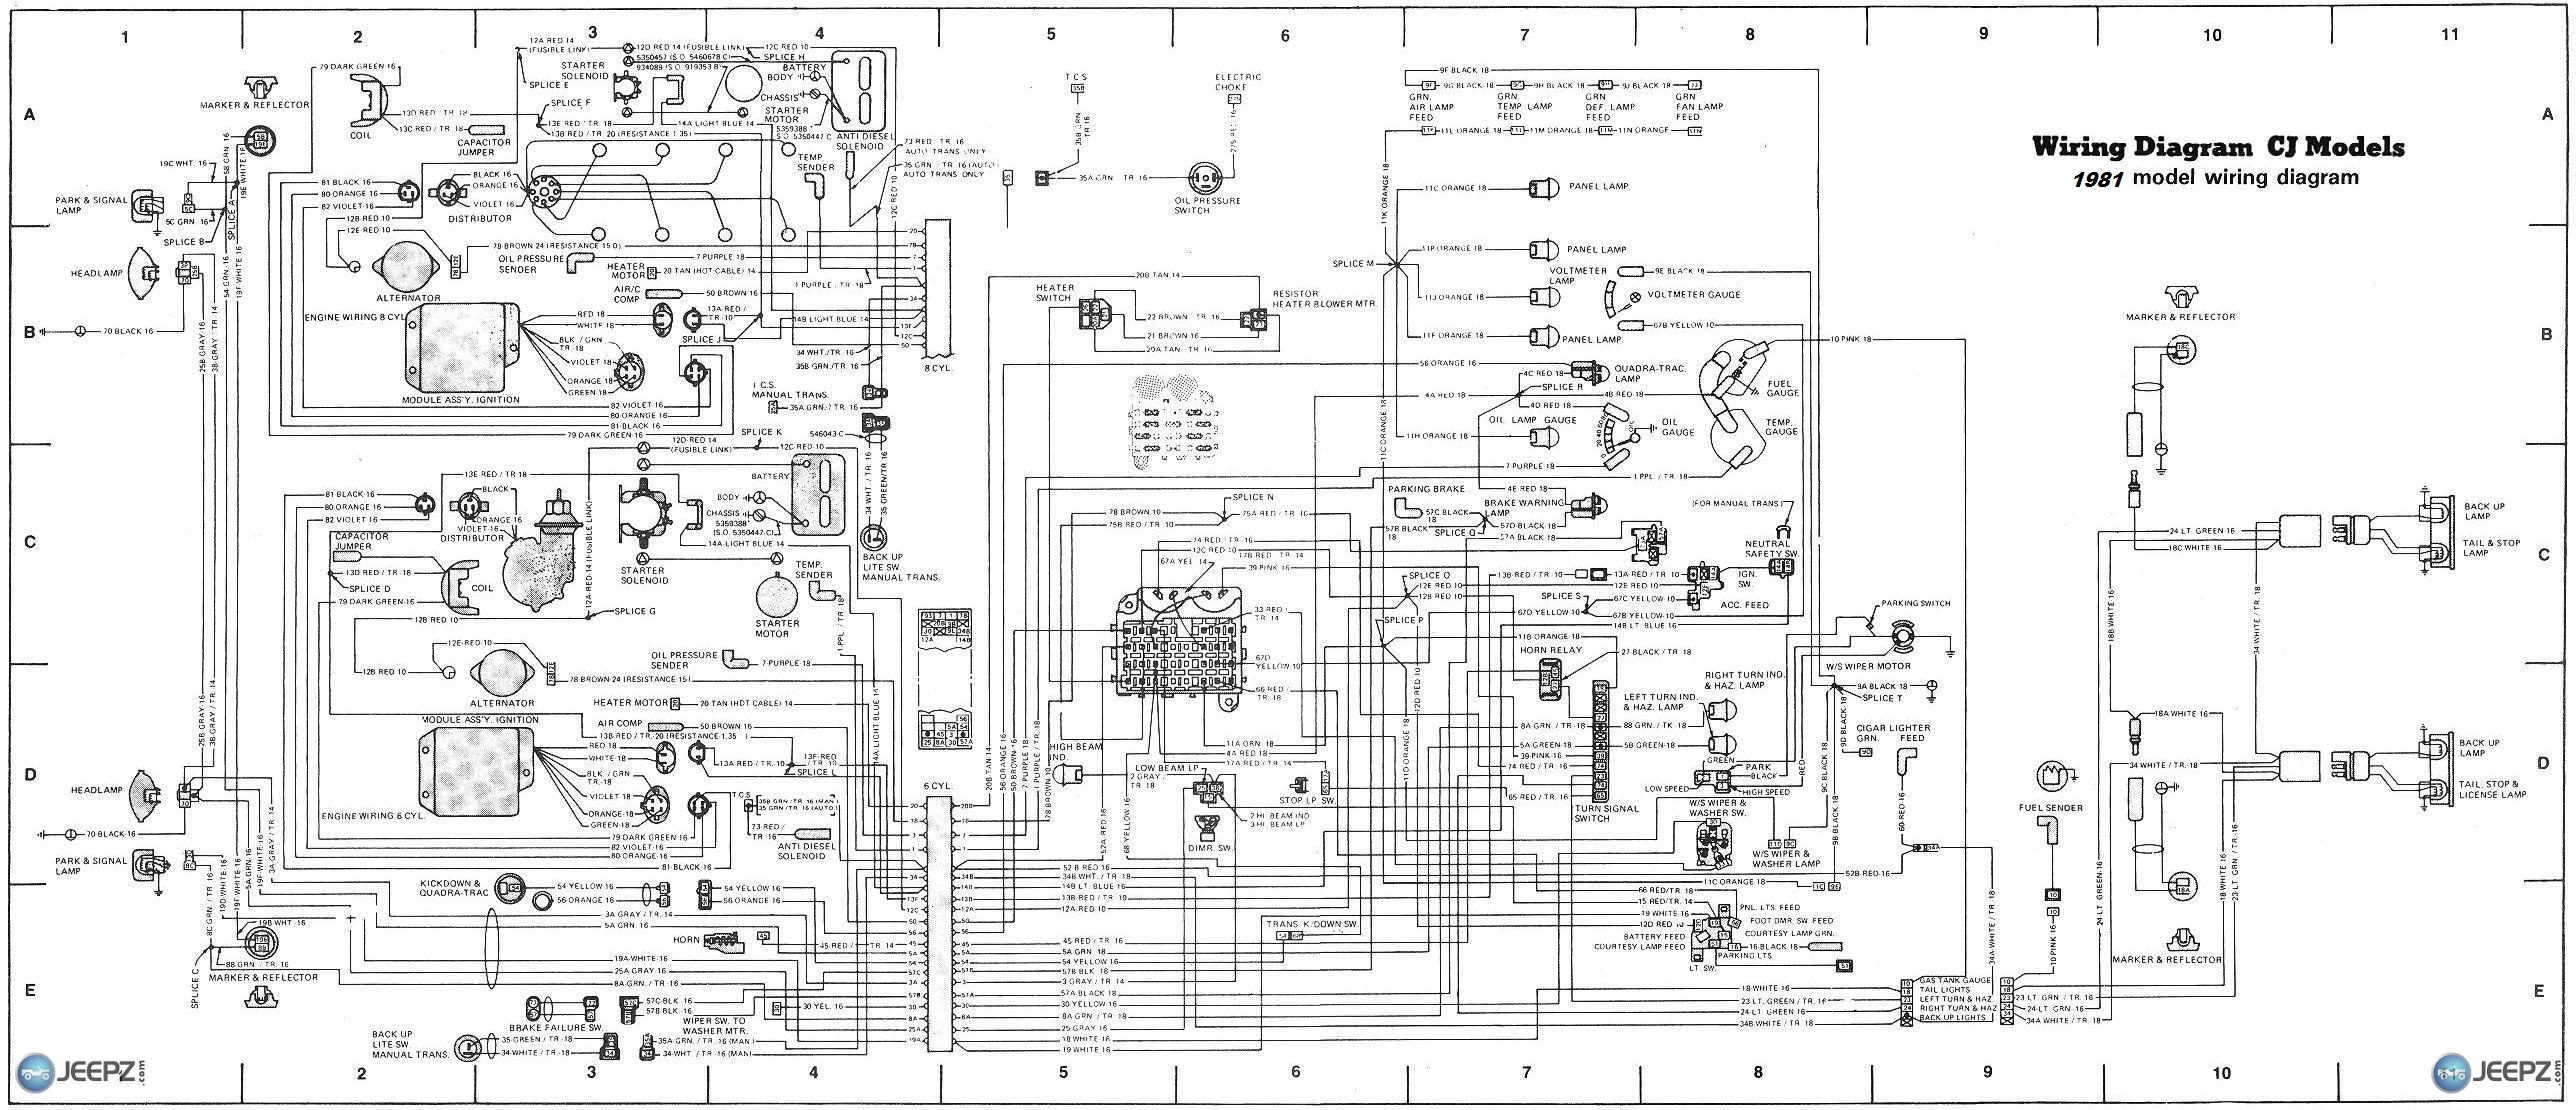 hight resolution of wiring diagram for cj8 wiring diagram source tools for wiring 1981 jeep cj8 wiring diagram wiring